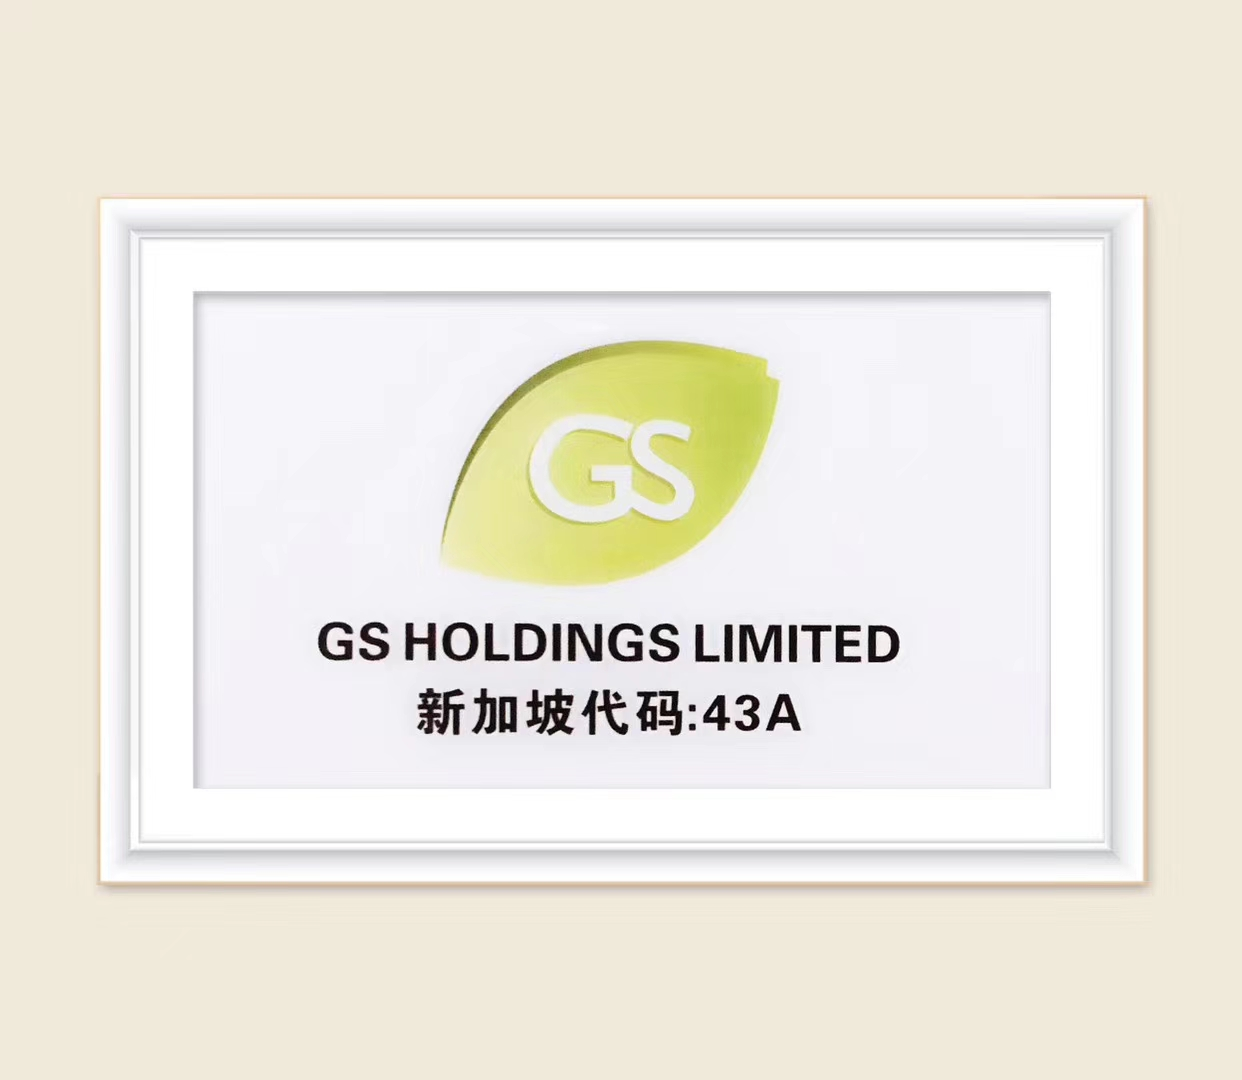 GS turns losses into gains, comprehensive industry won firm support of the people